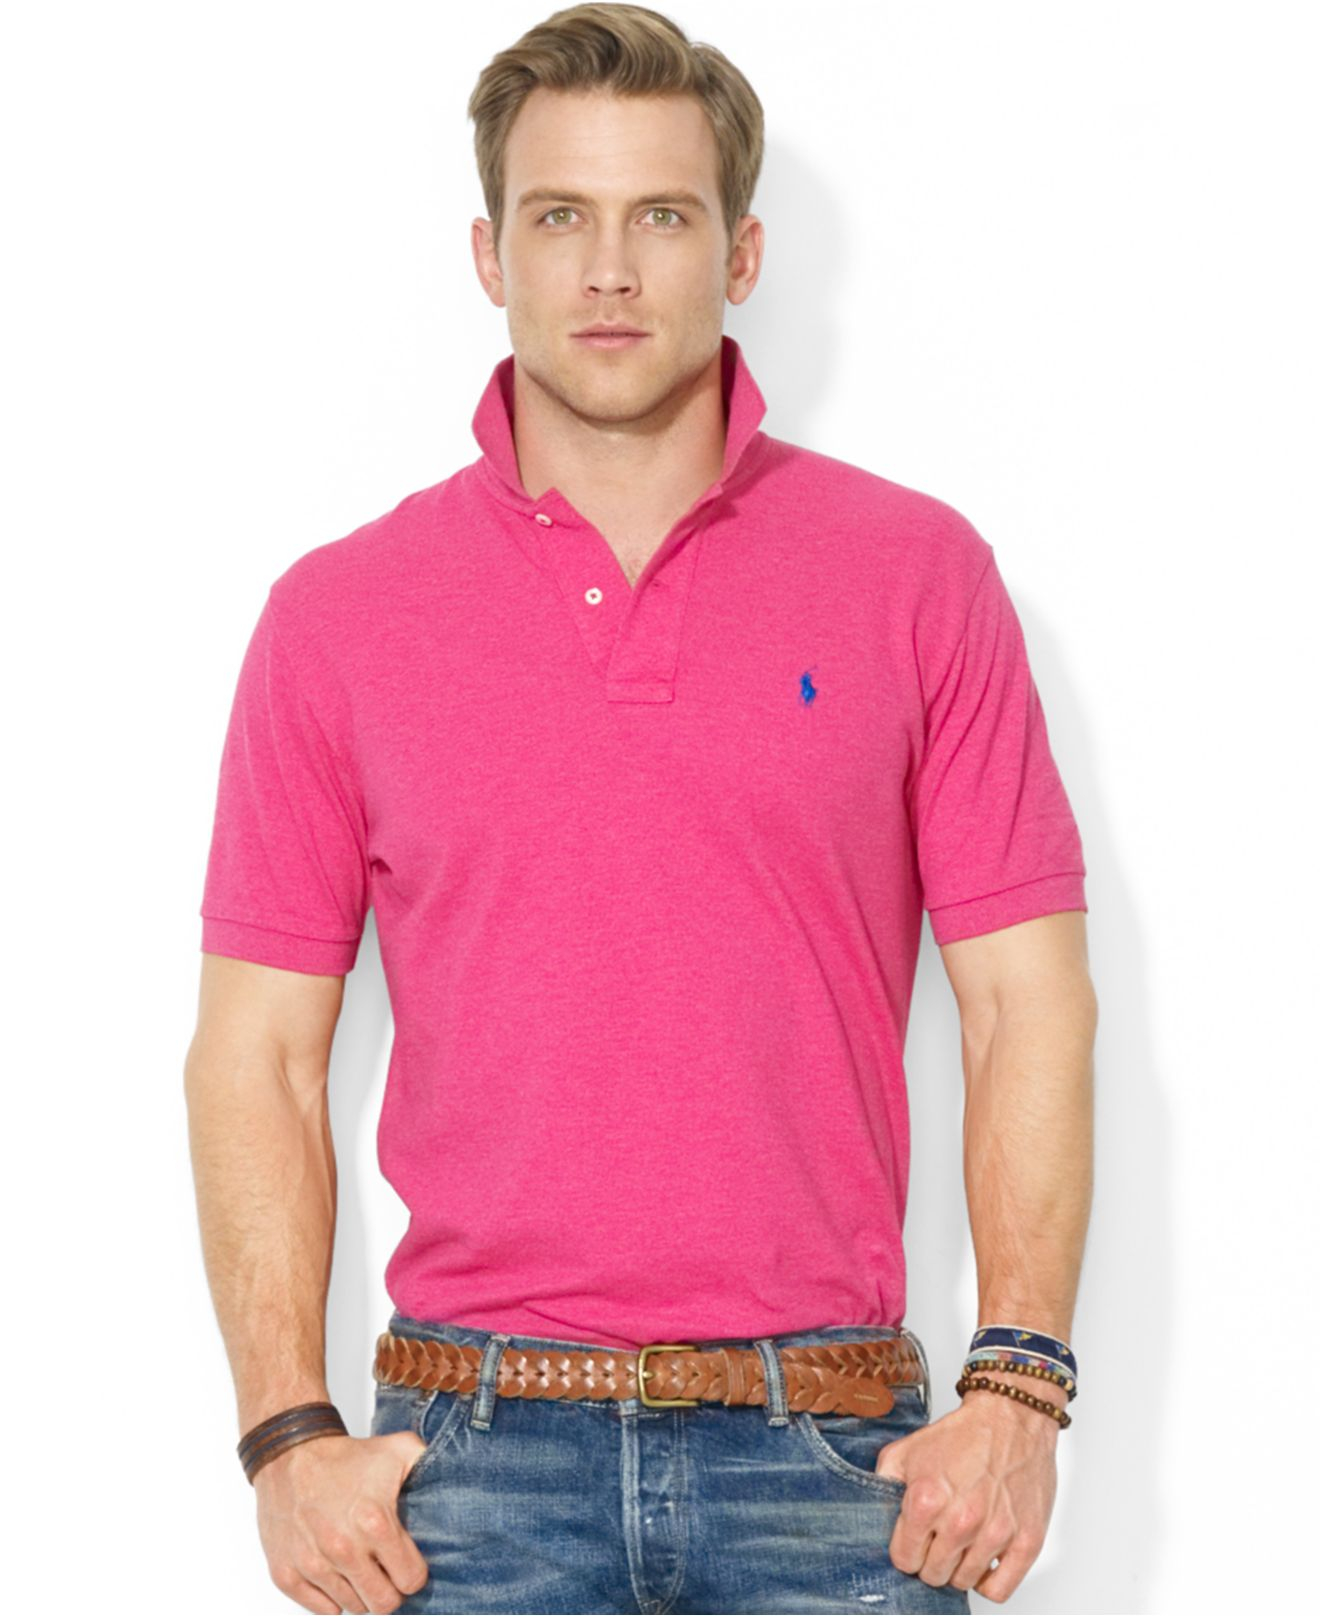 d40eb656e Polo ralph lauren Classic-Fit Mesh Polo Shirt in Pink for Men